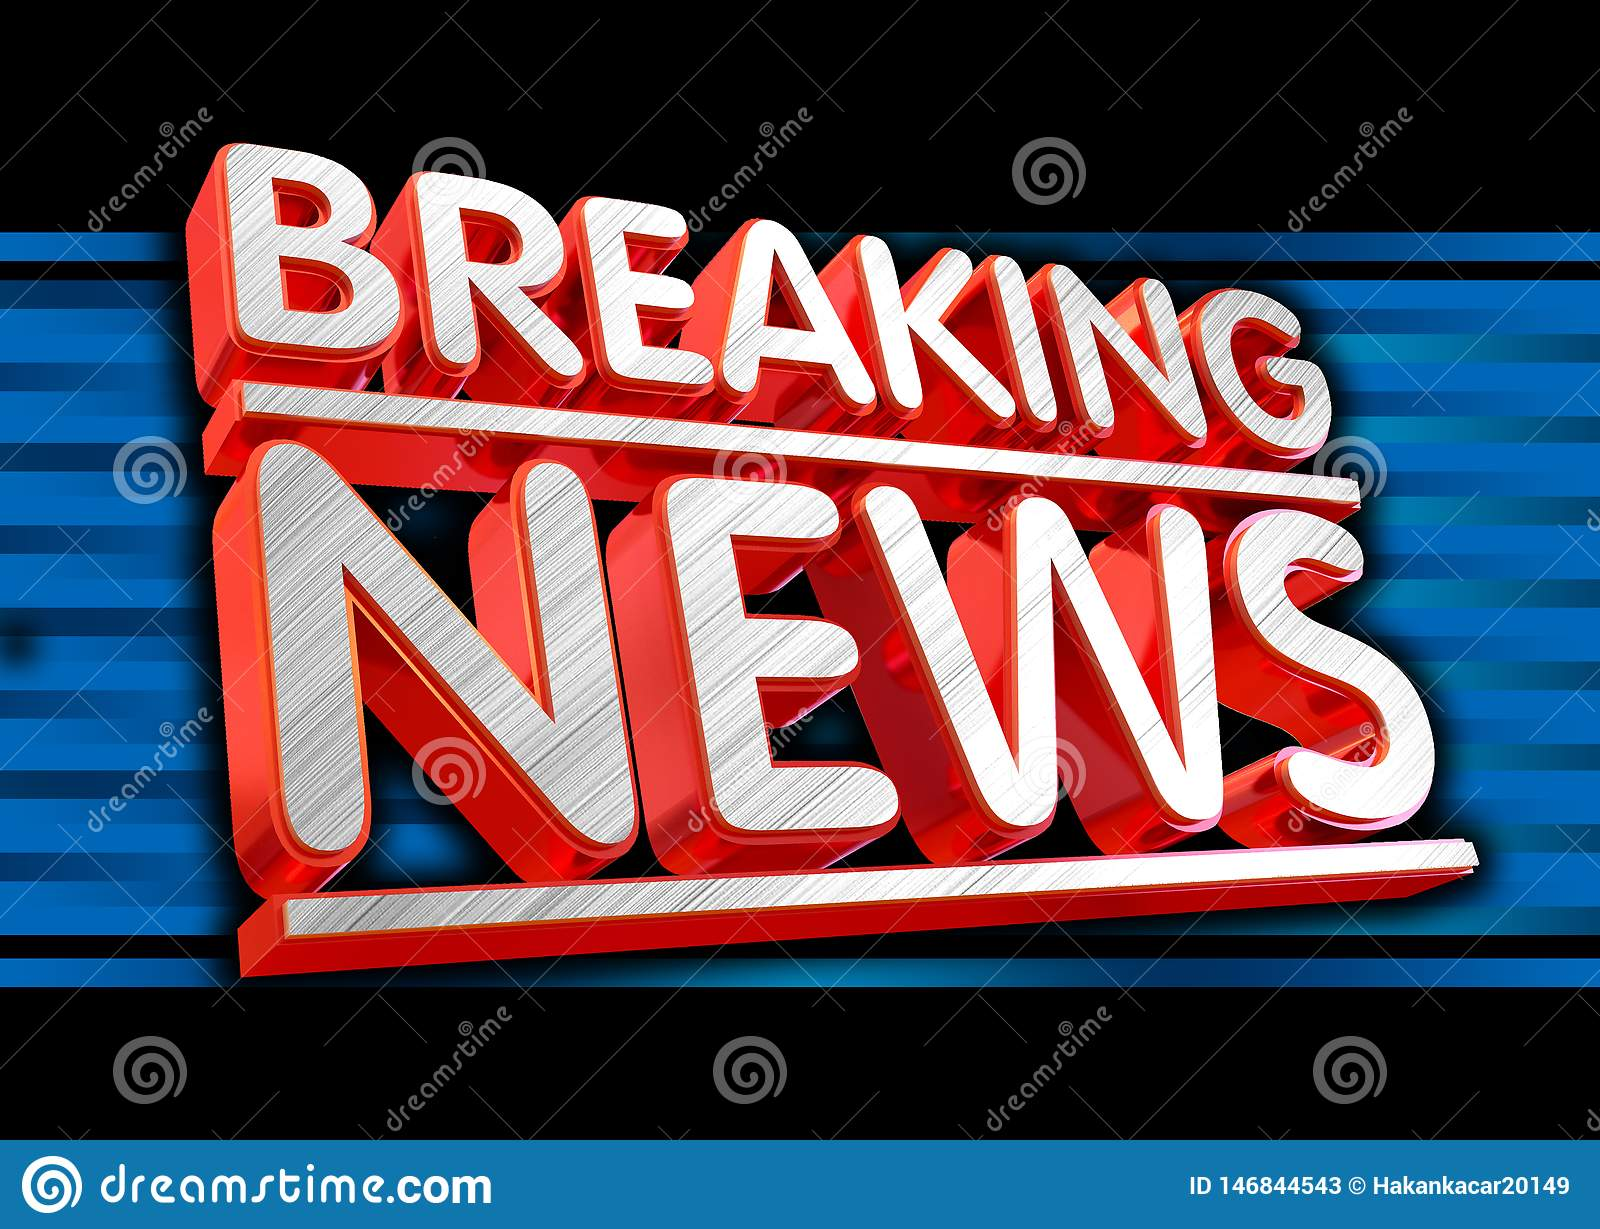 breaking news live on business technology news background.